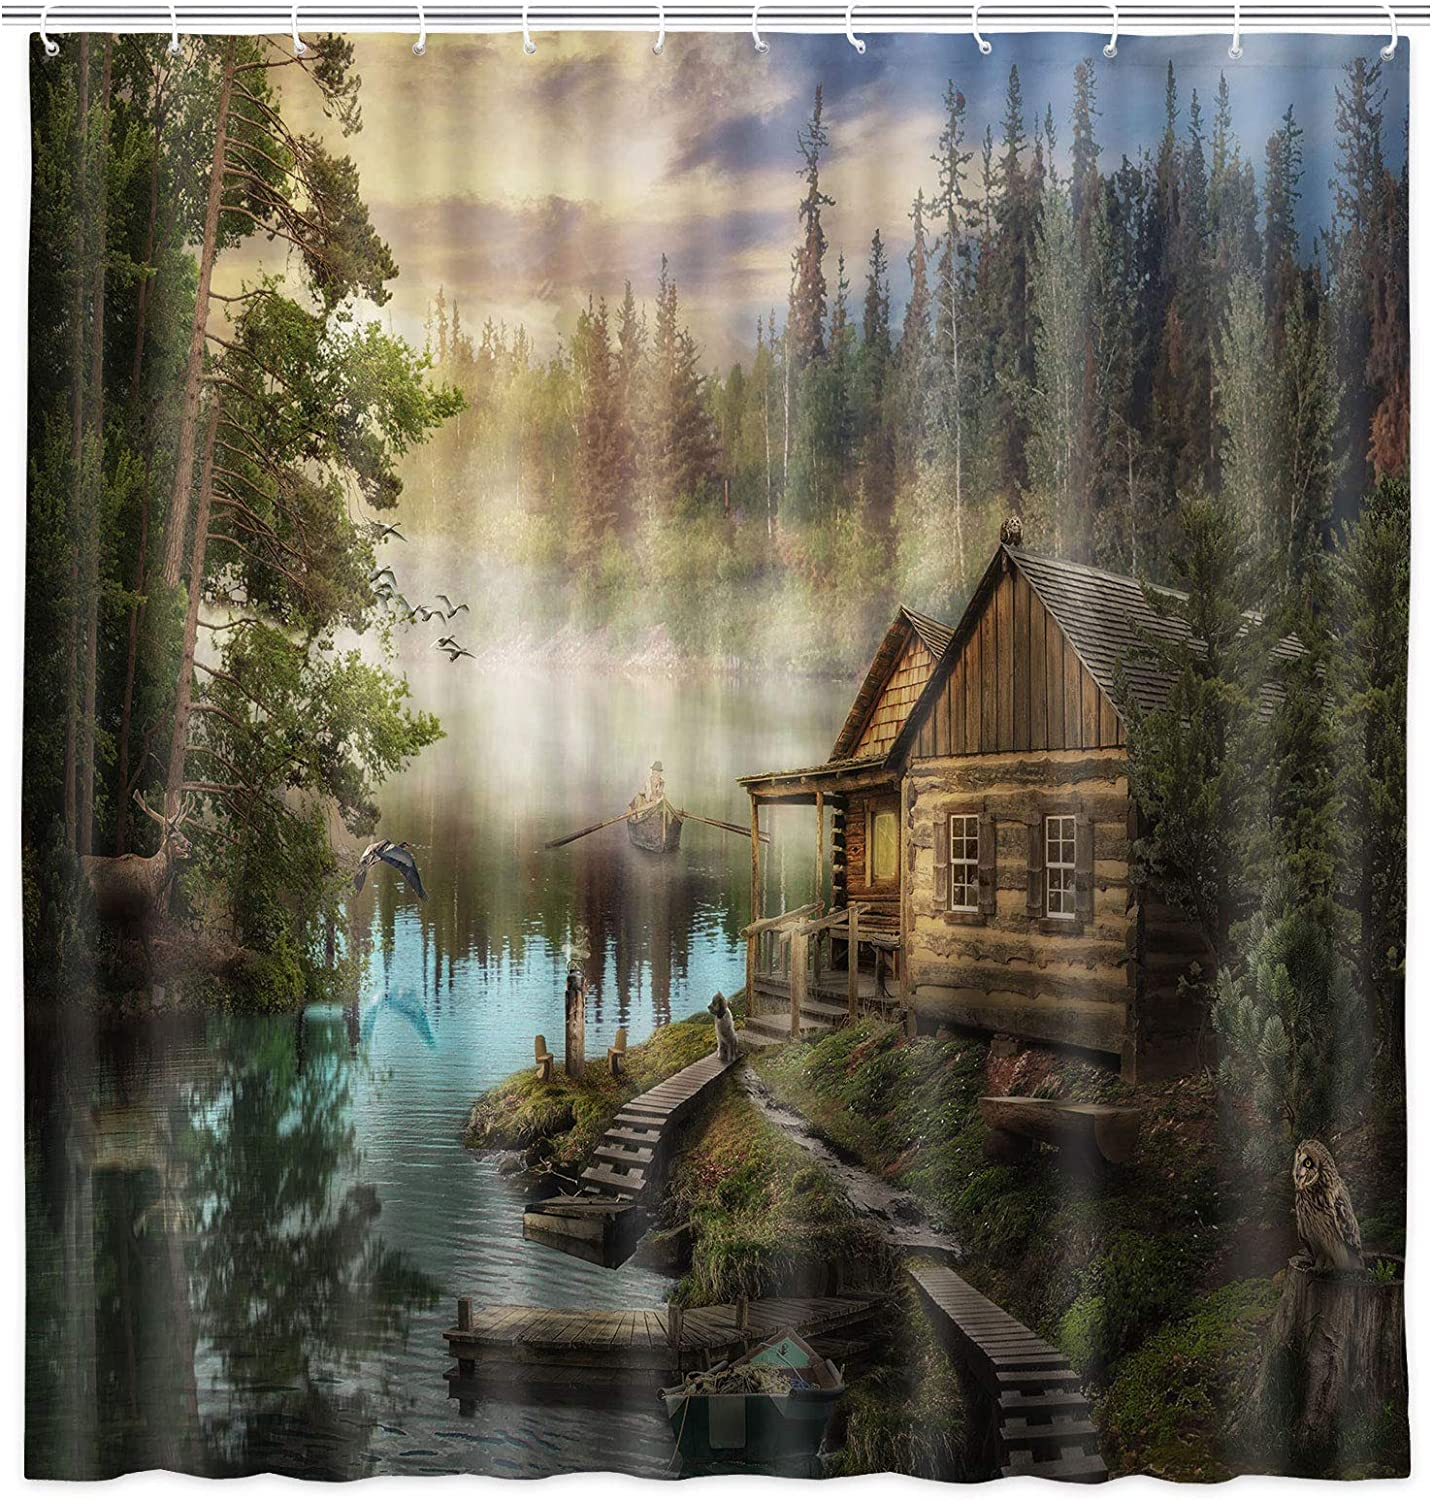 NYMB Natural Scenery Lake House Shower Curtain Sets, Wooden Cabin Pine Tree in Magic Forest, Waterproof Fabric Bath Curtain Bathroom Accessories Decor Set with Hooks, 69X70 in